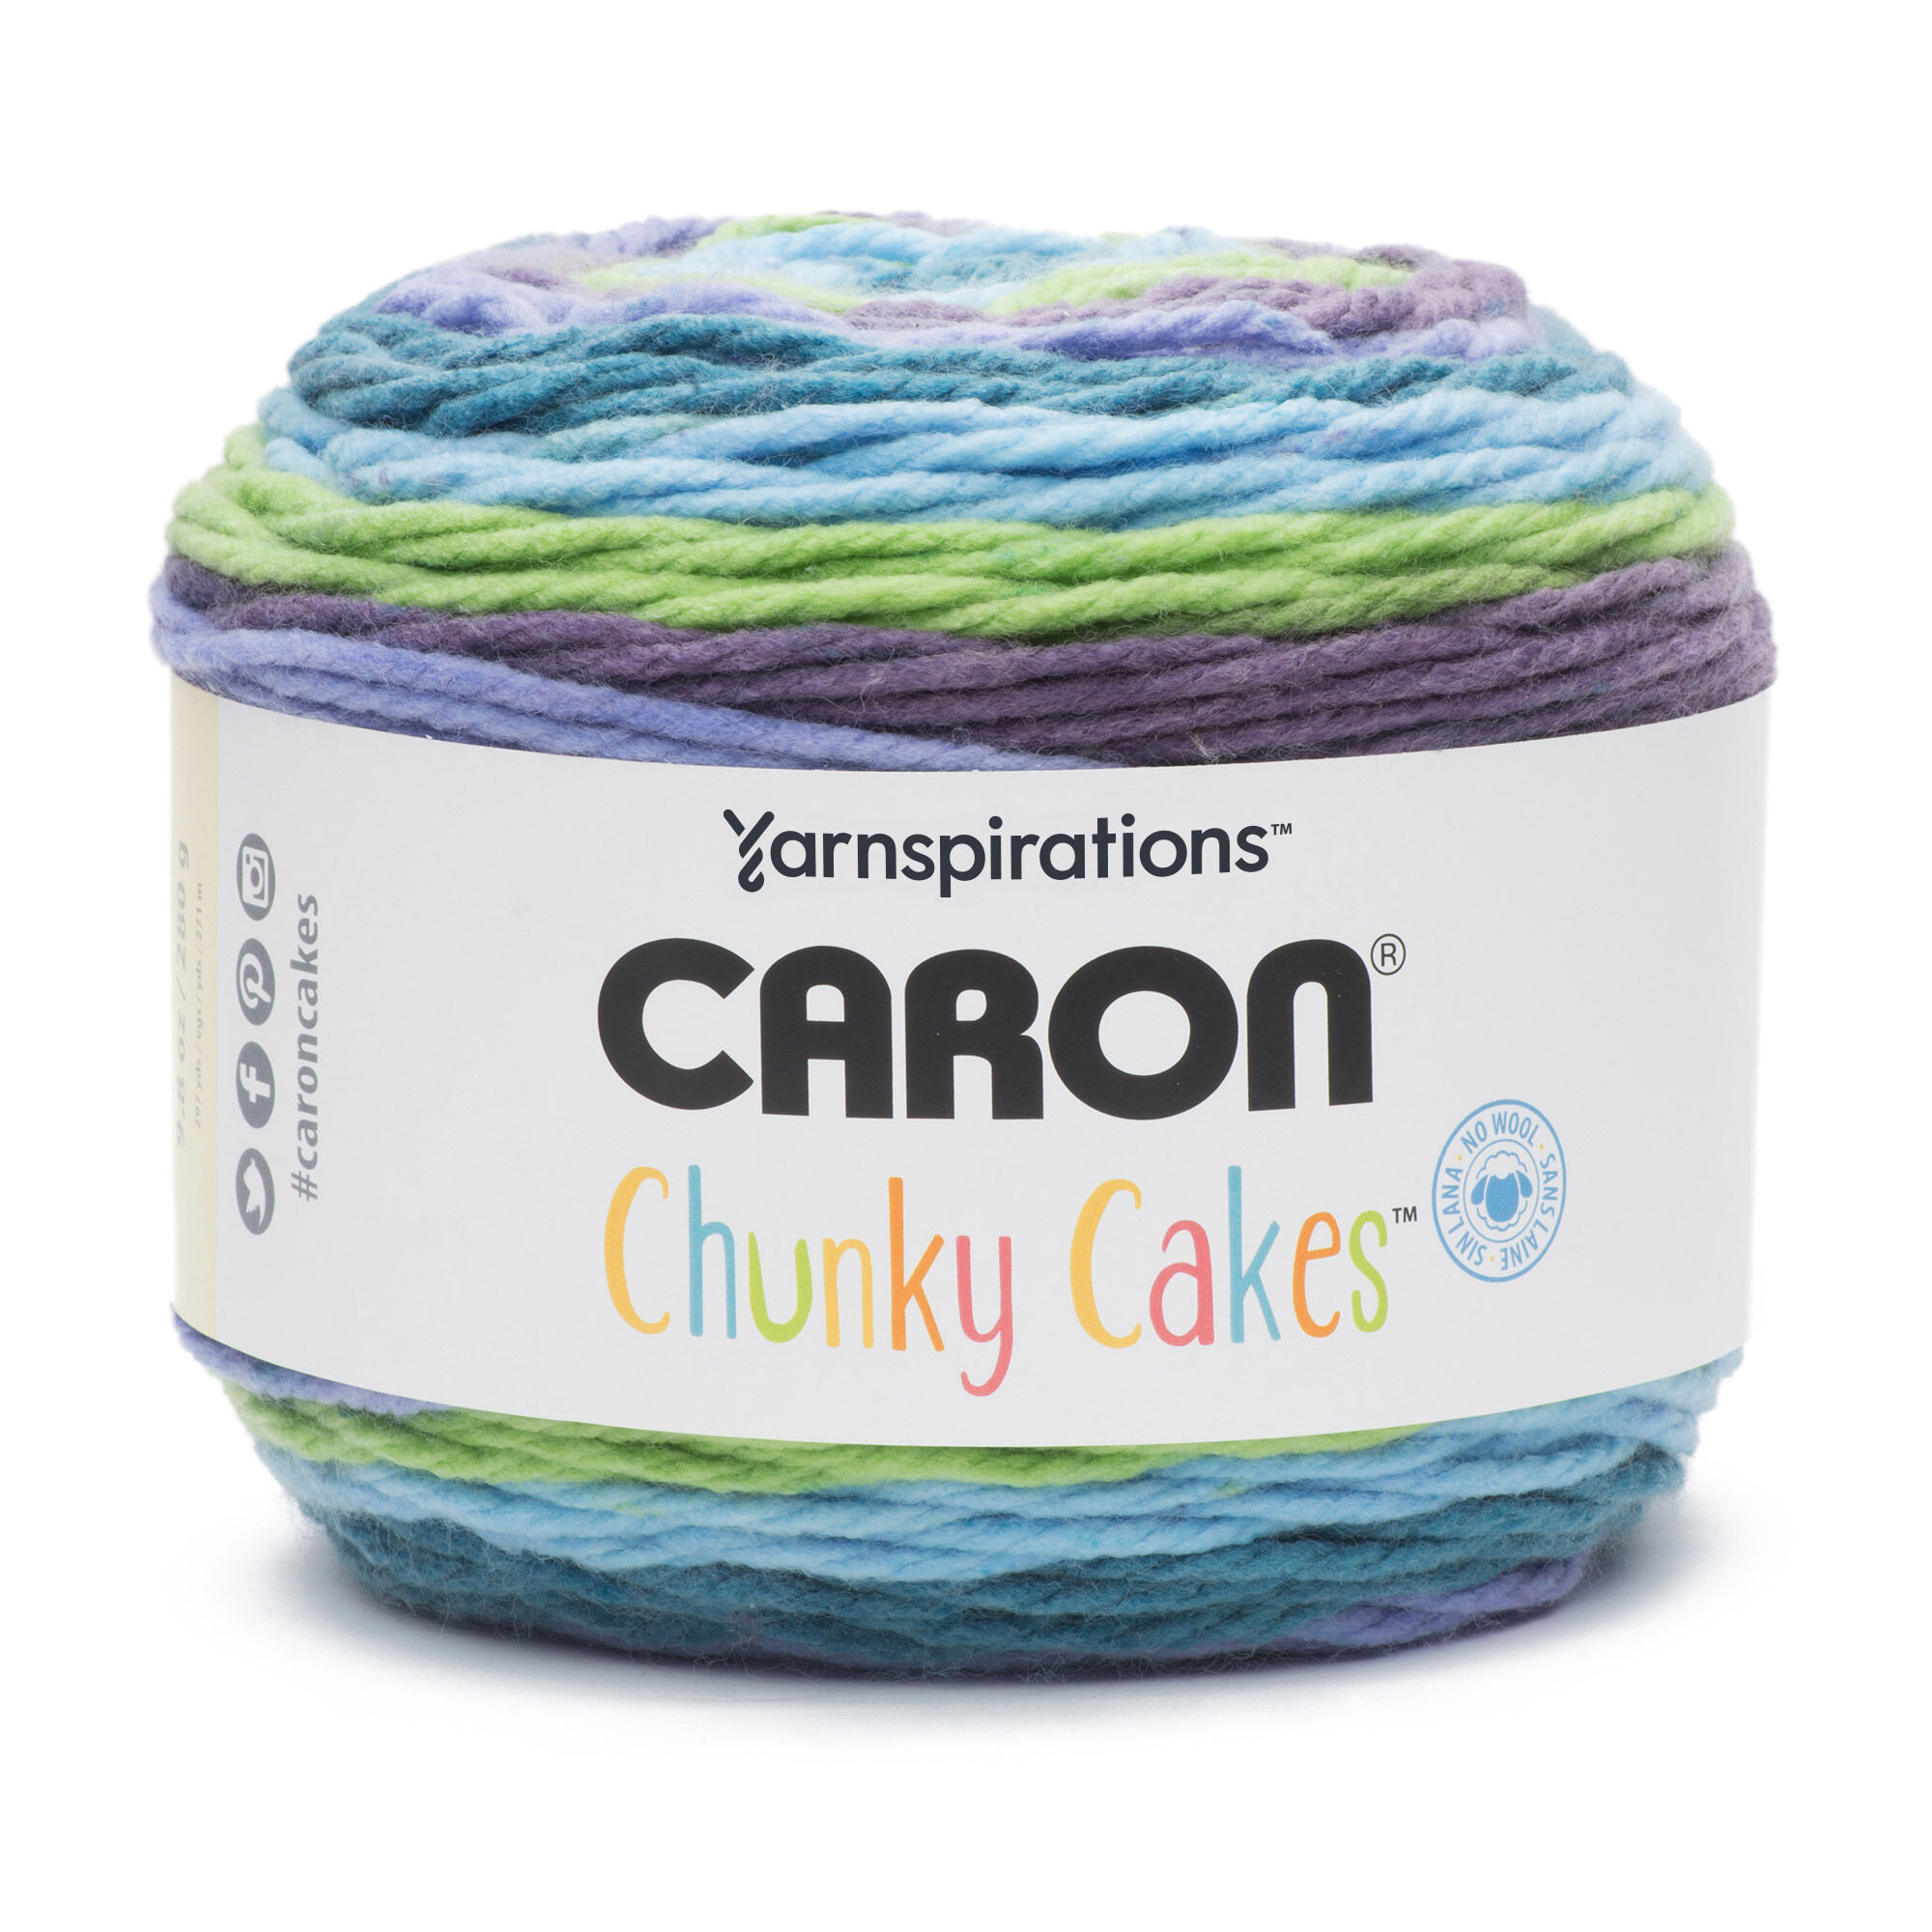 Caron Chunky Cakes Yarn Twist Of Lime Yarnspirations